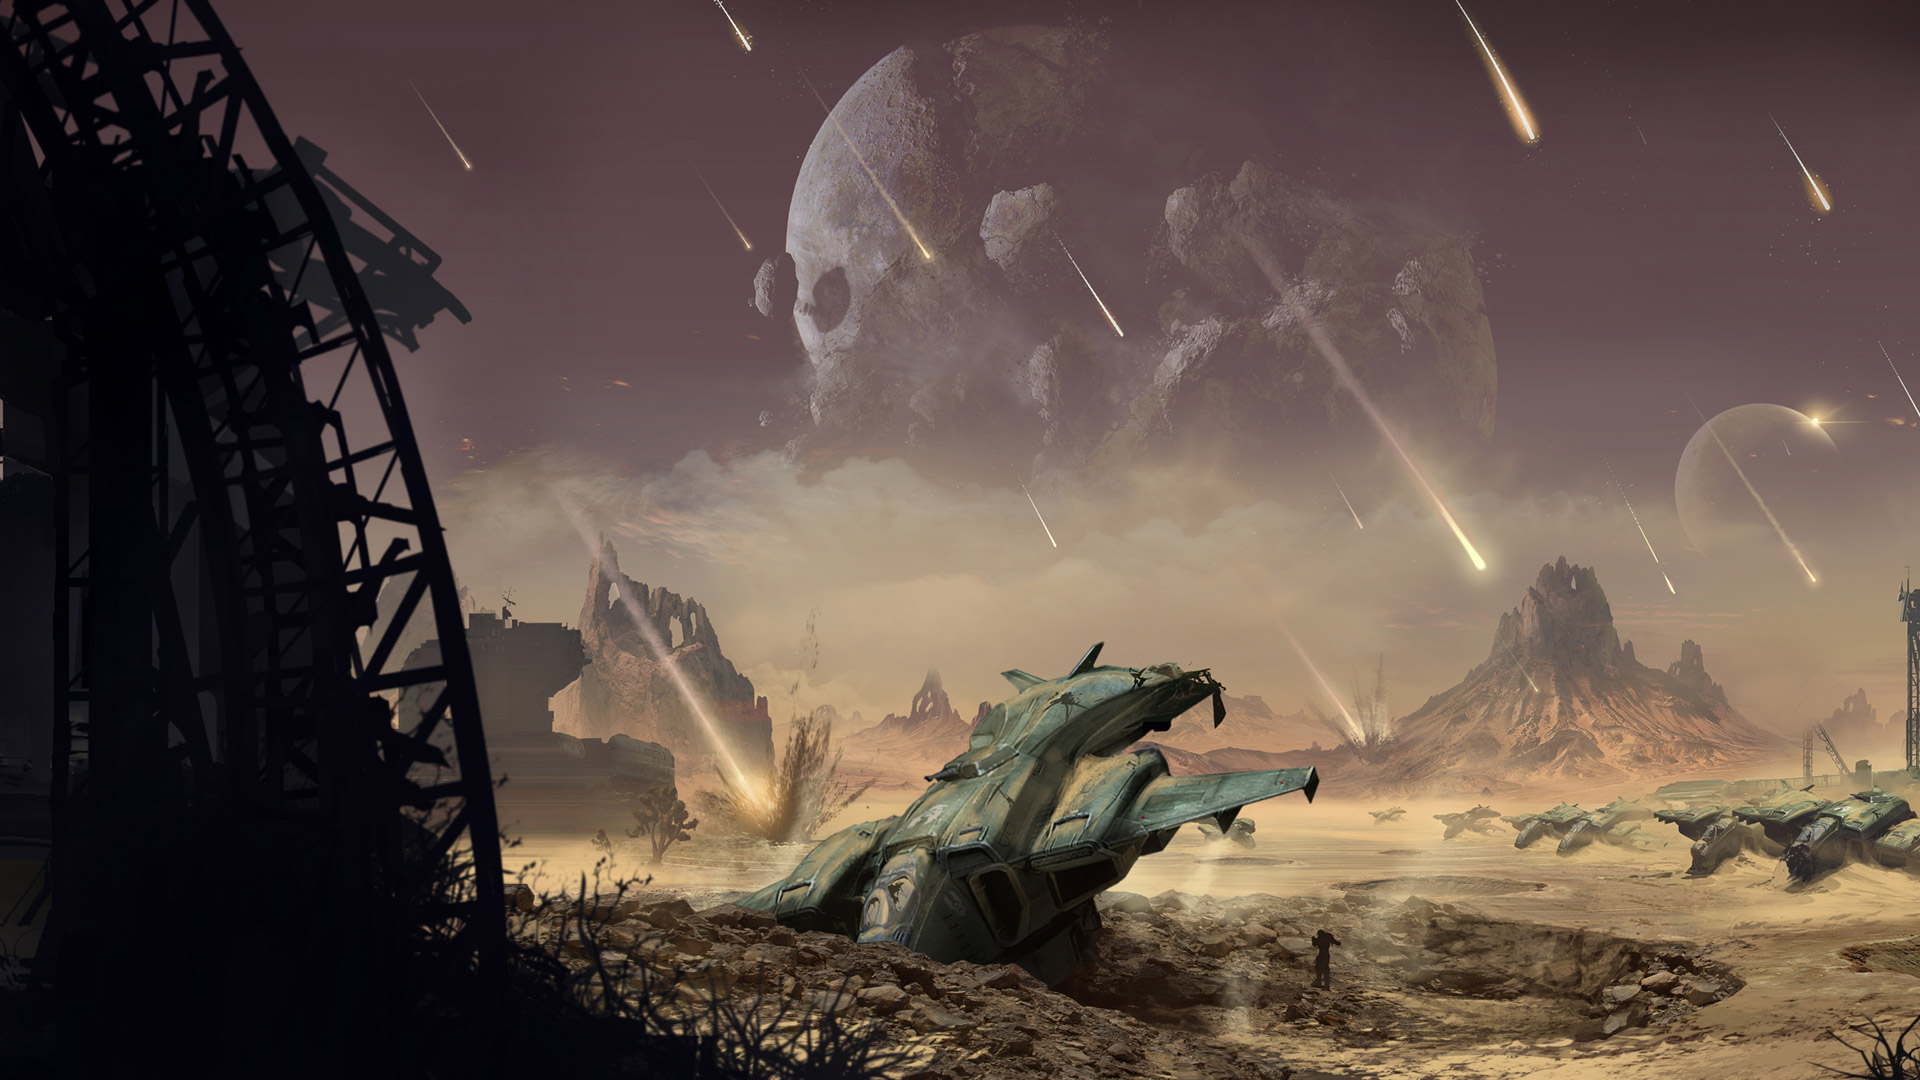 Free Halo 4 Wallpaper in 1920x1080